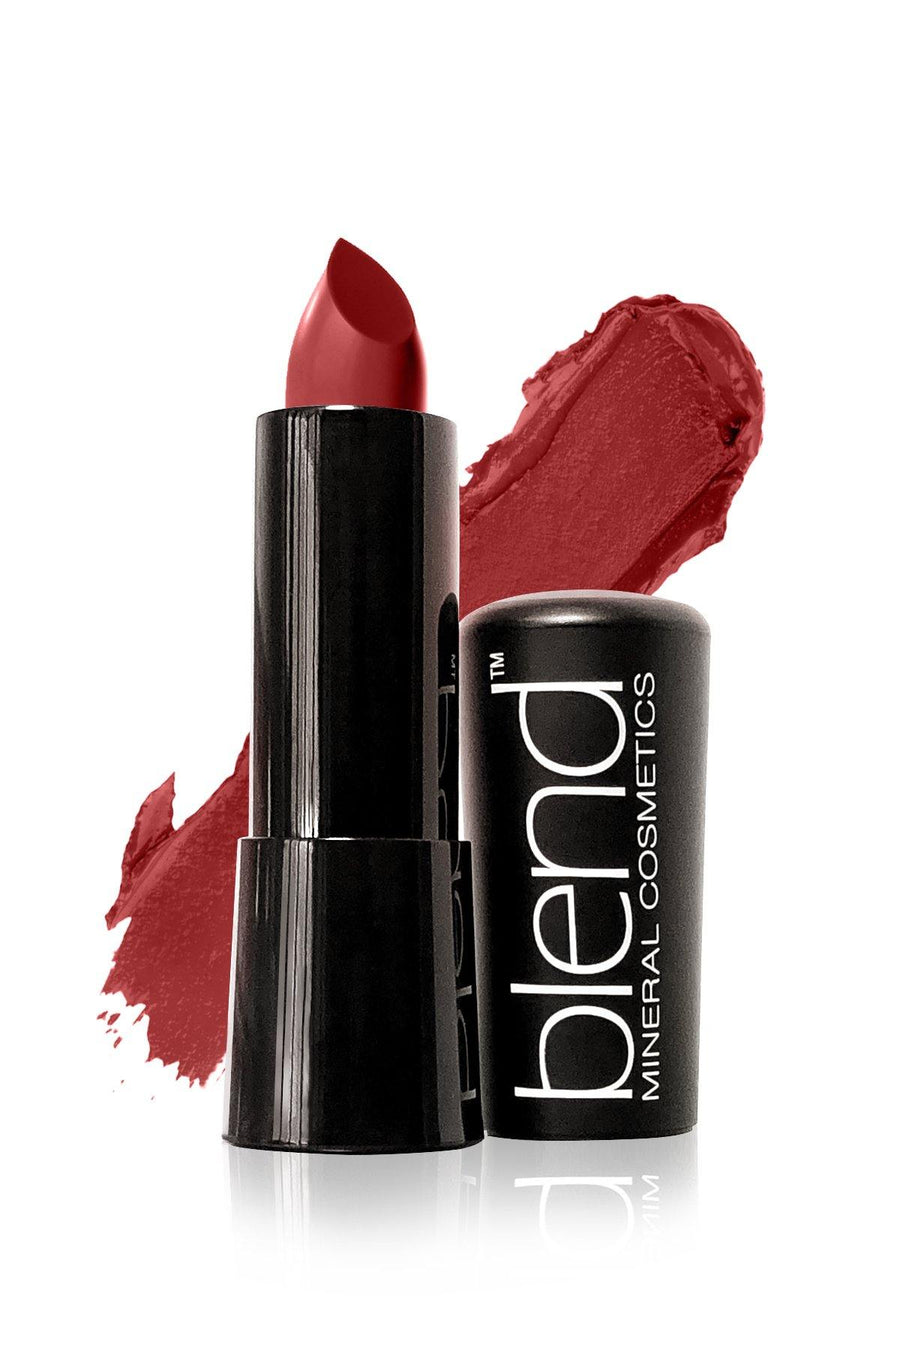 Matte Lipstick #19 - Dark Red - Blend Mineral Cosmetics